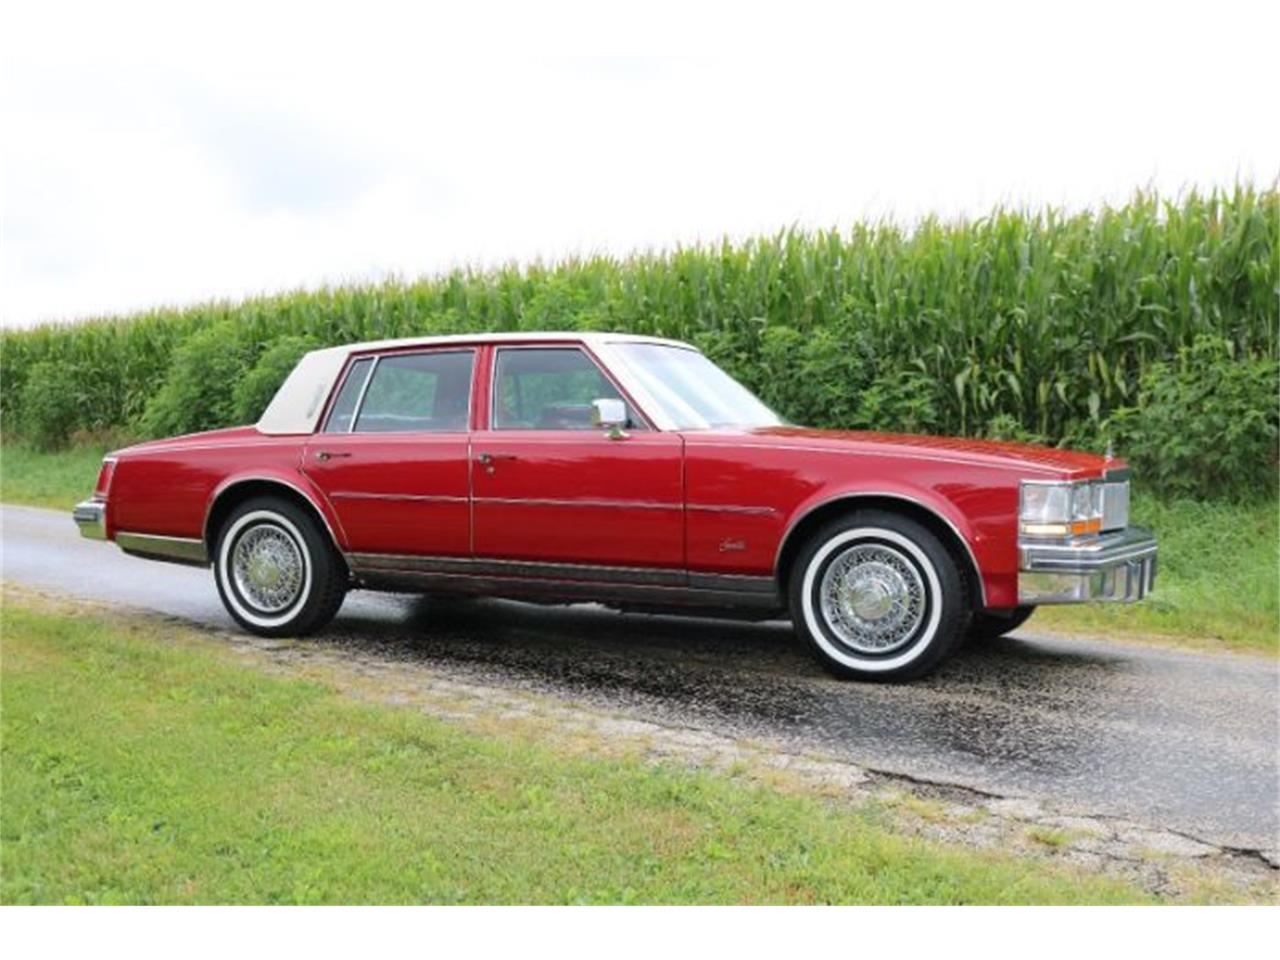 1979 Cadillac Seville for sale in Cadillac, MI